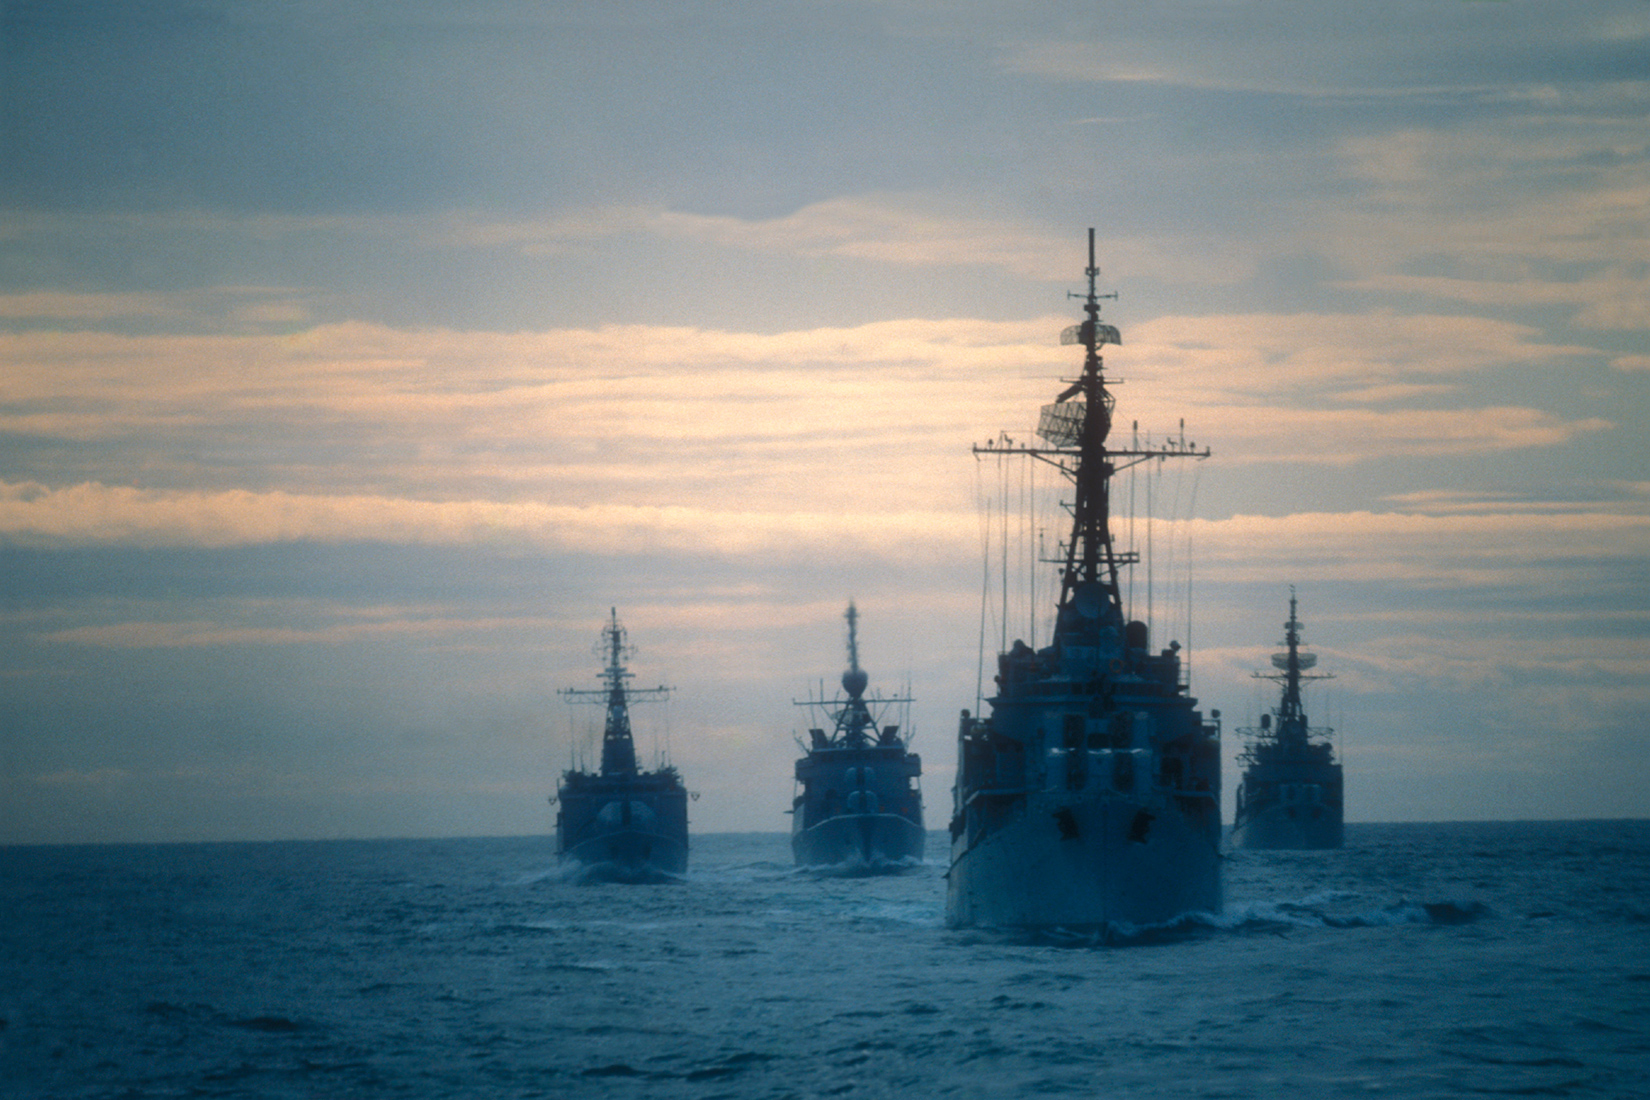 China's assertive stance in the South China Sea